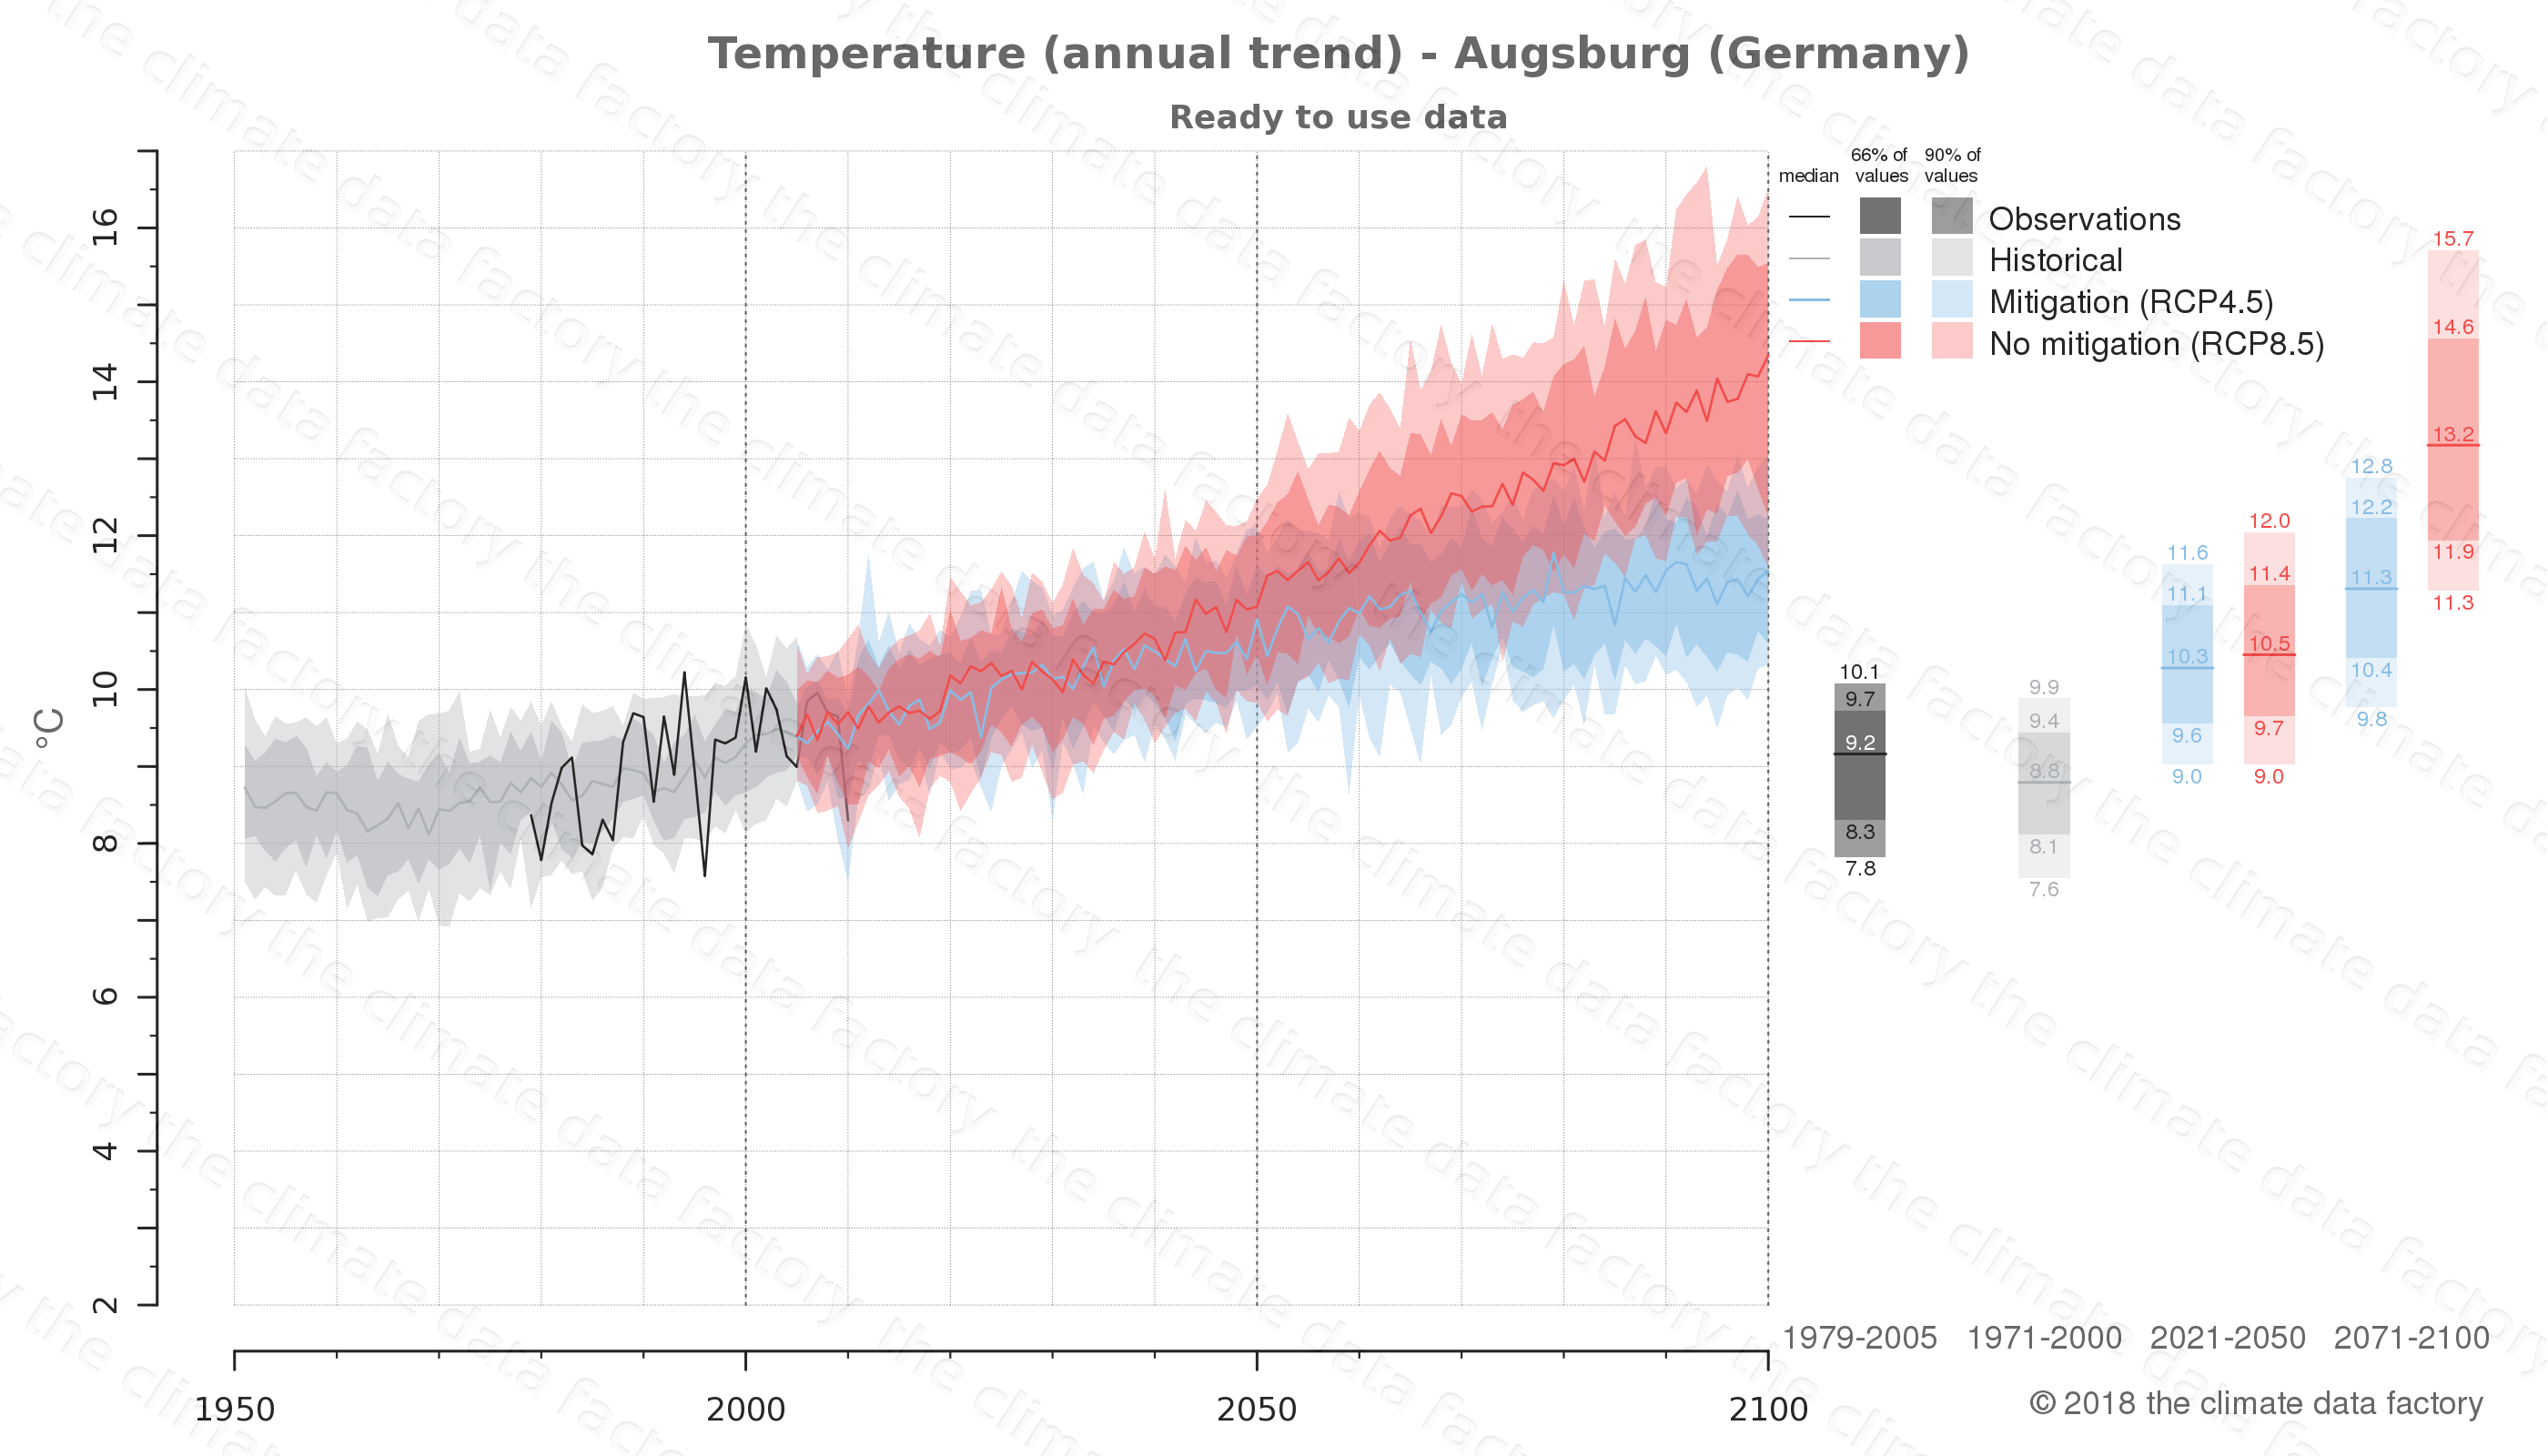 climate change data policy adaptation climate graph city data temperature augsburg germany